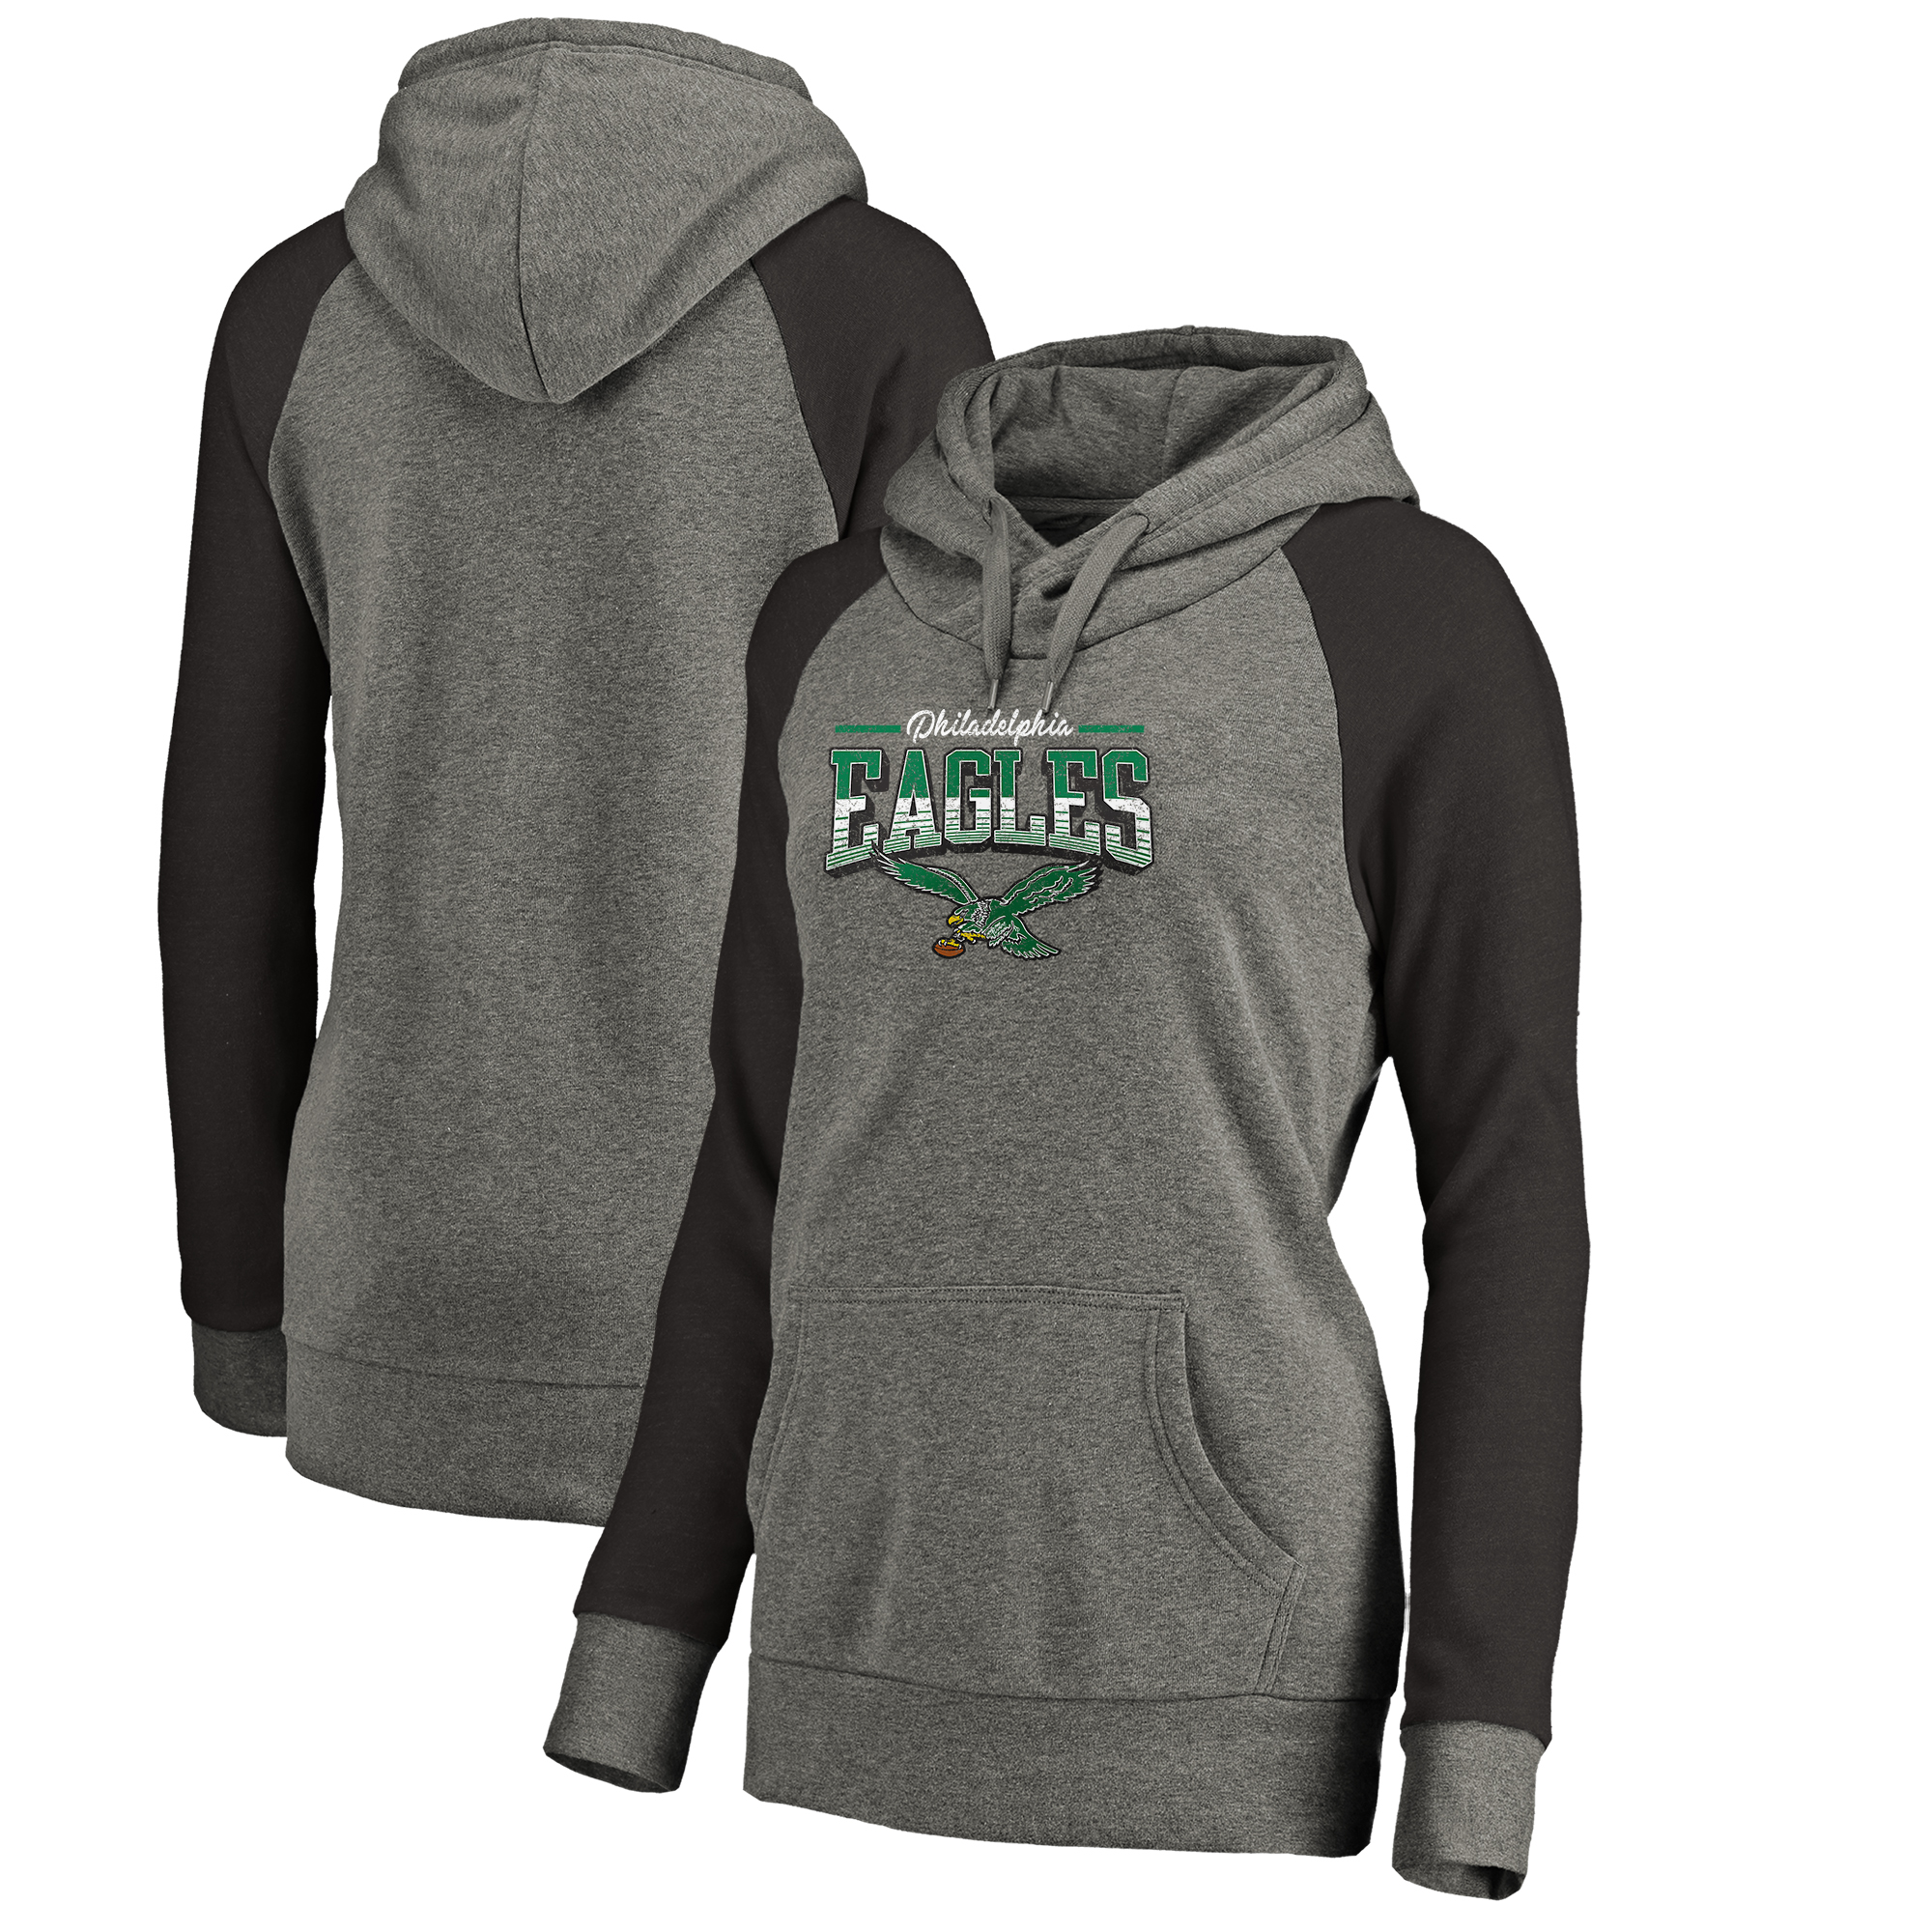 Philadelphia Eagles NFL Pro Line by Fanatics Branded Women's Throwback Collection Season Ticket Raglan Tri-Blend Pullover Hoodie - Heathered Gray/Heathered Black